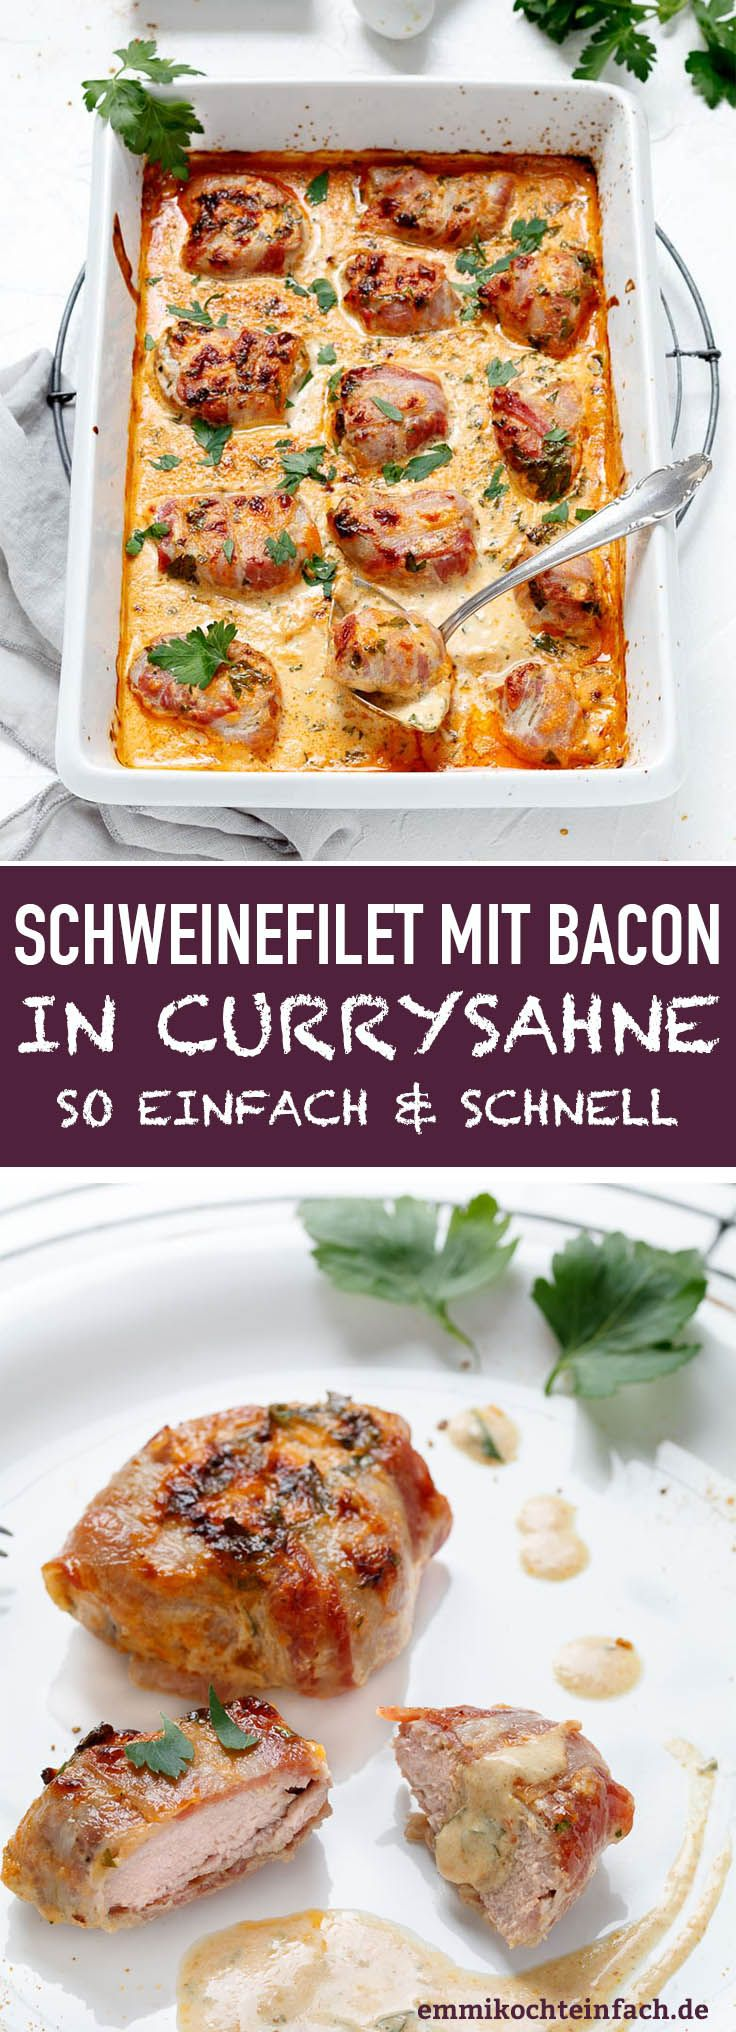 Schweinefilet mit Bacon in Currysahne